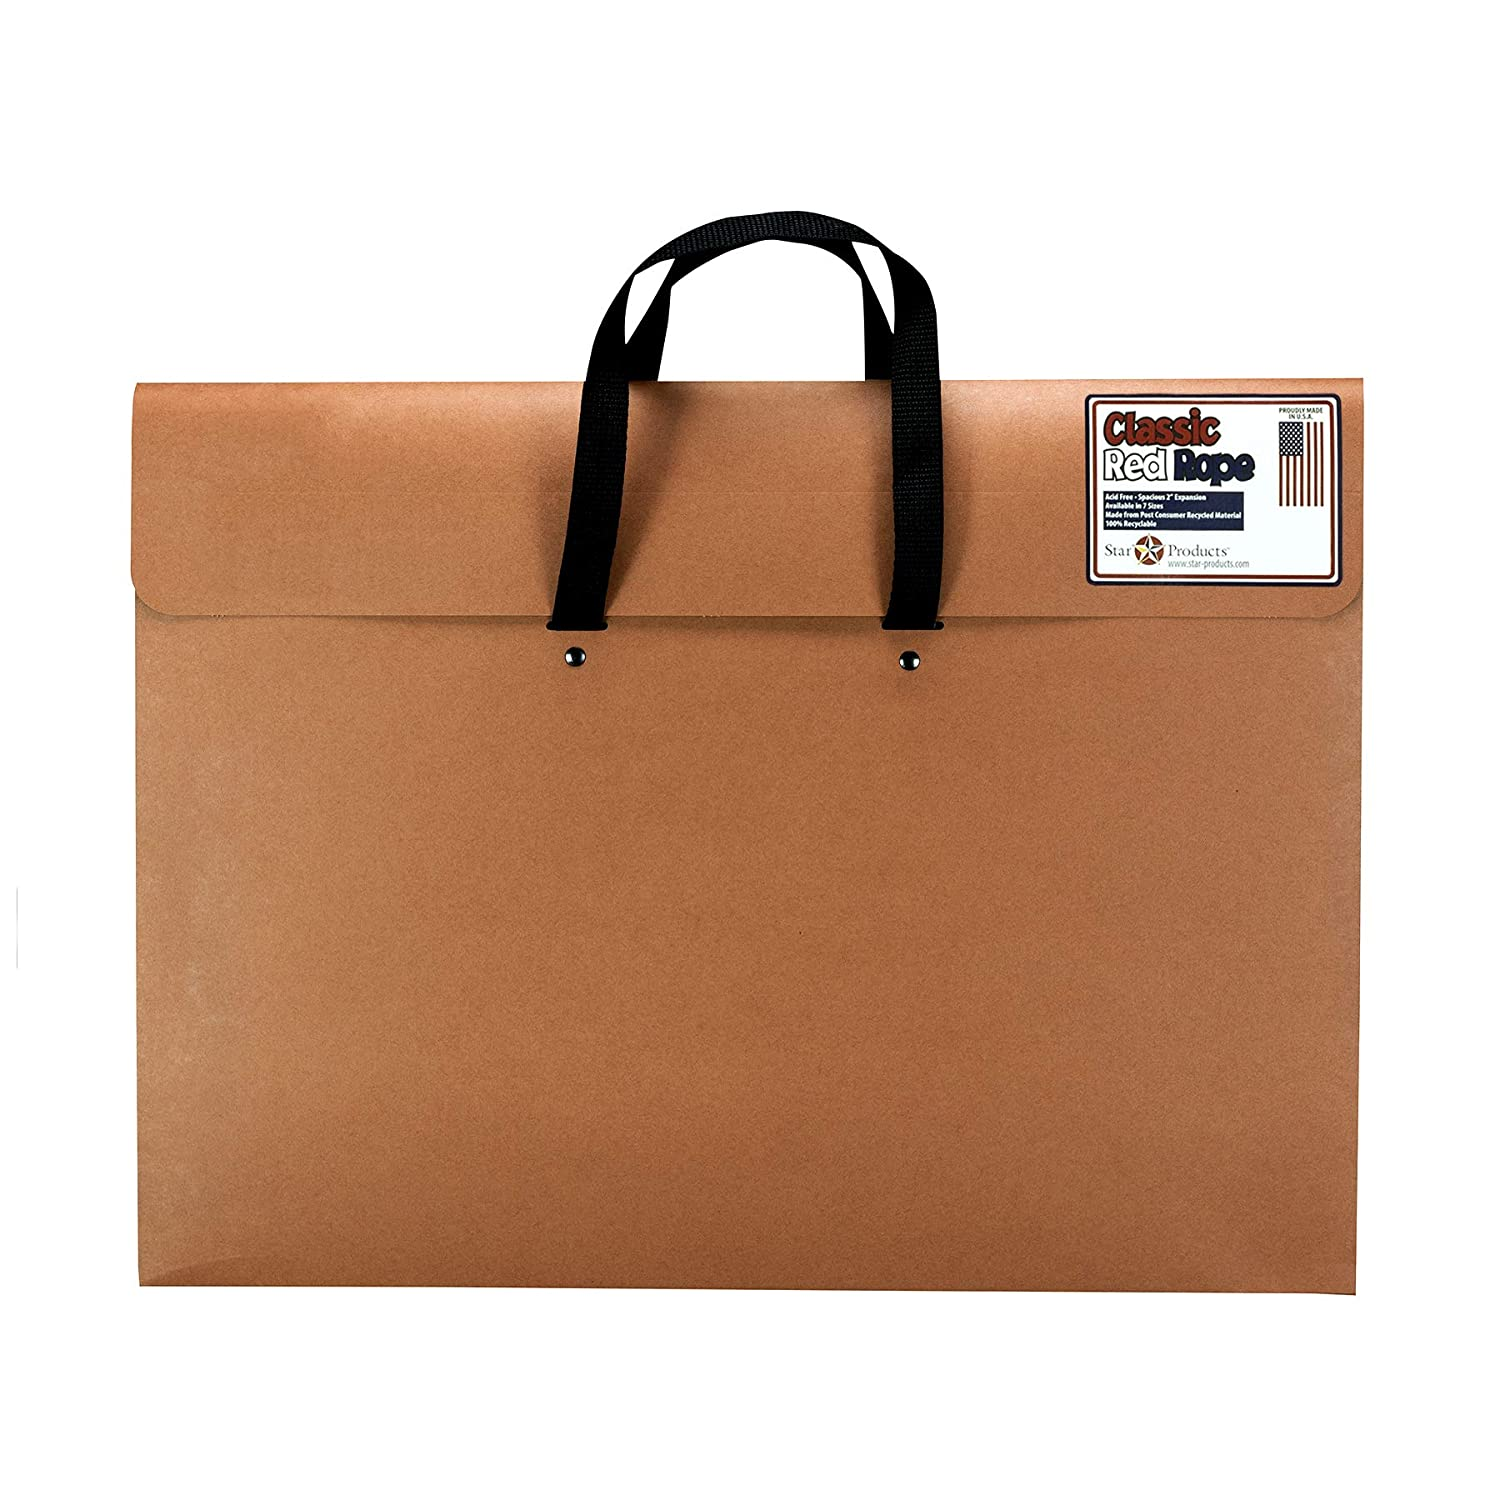 """B001DKMU72 Star Products 223H Classic Red Rope Paper Artist Portfolio with Soft Woven Handle, 23"""" x 31"""" 71vF2BHMUt2L"""